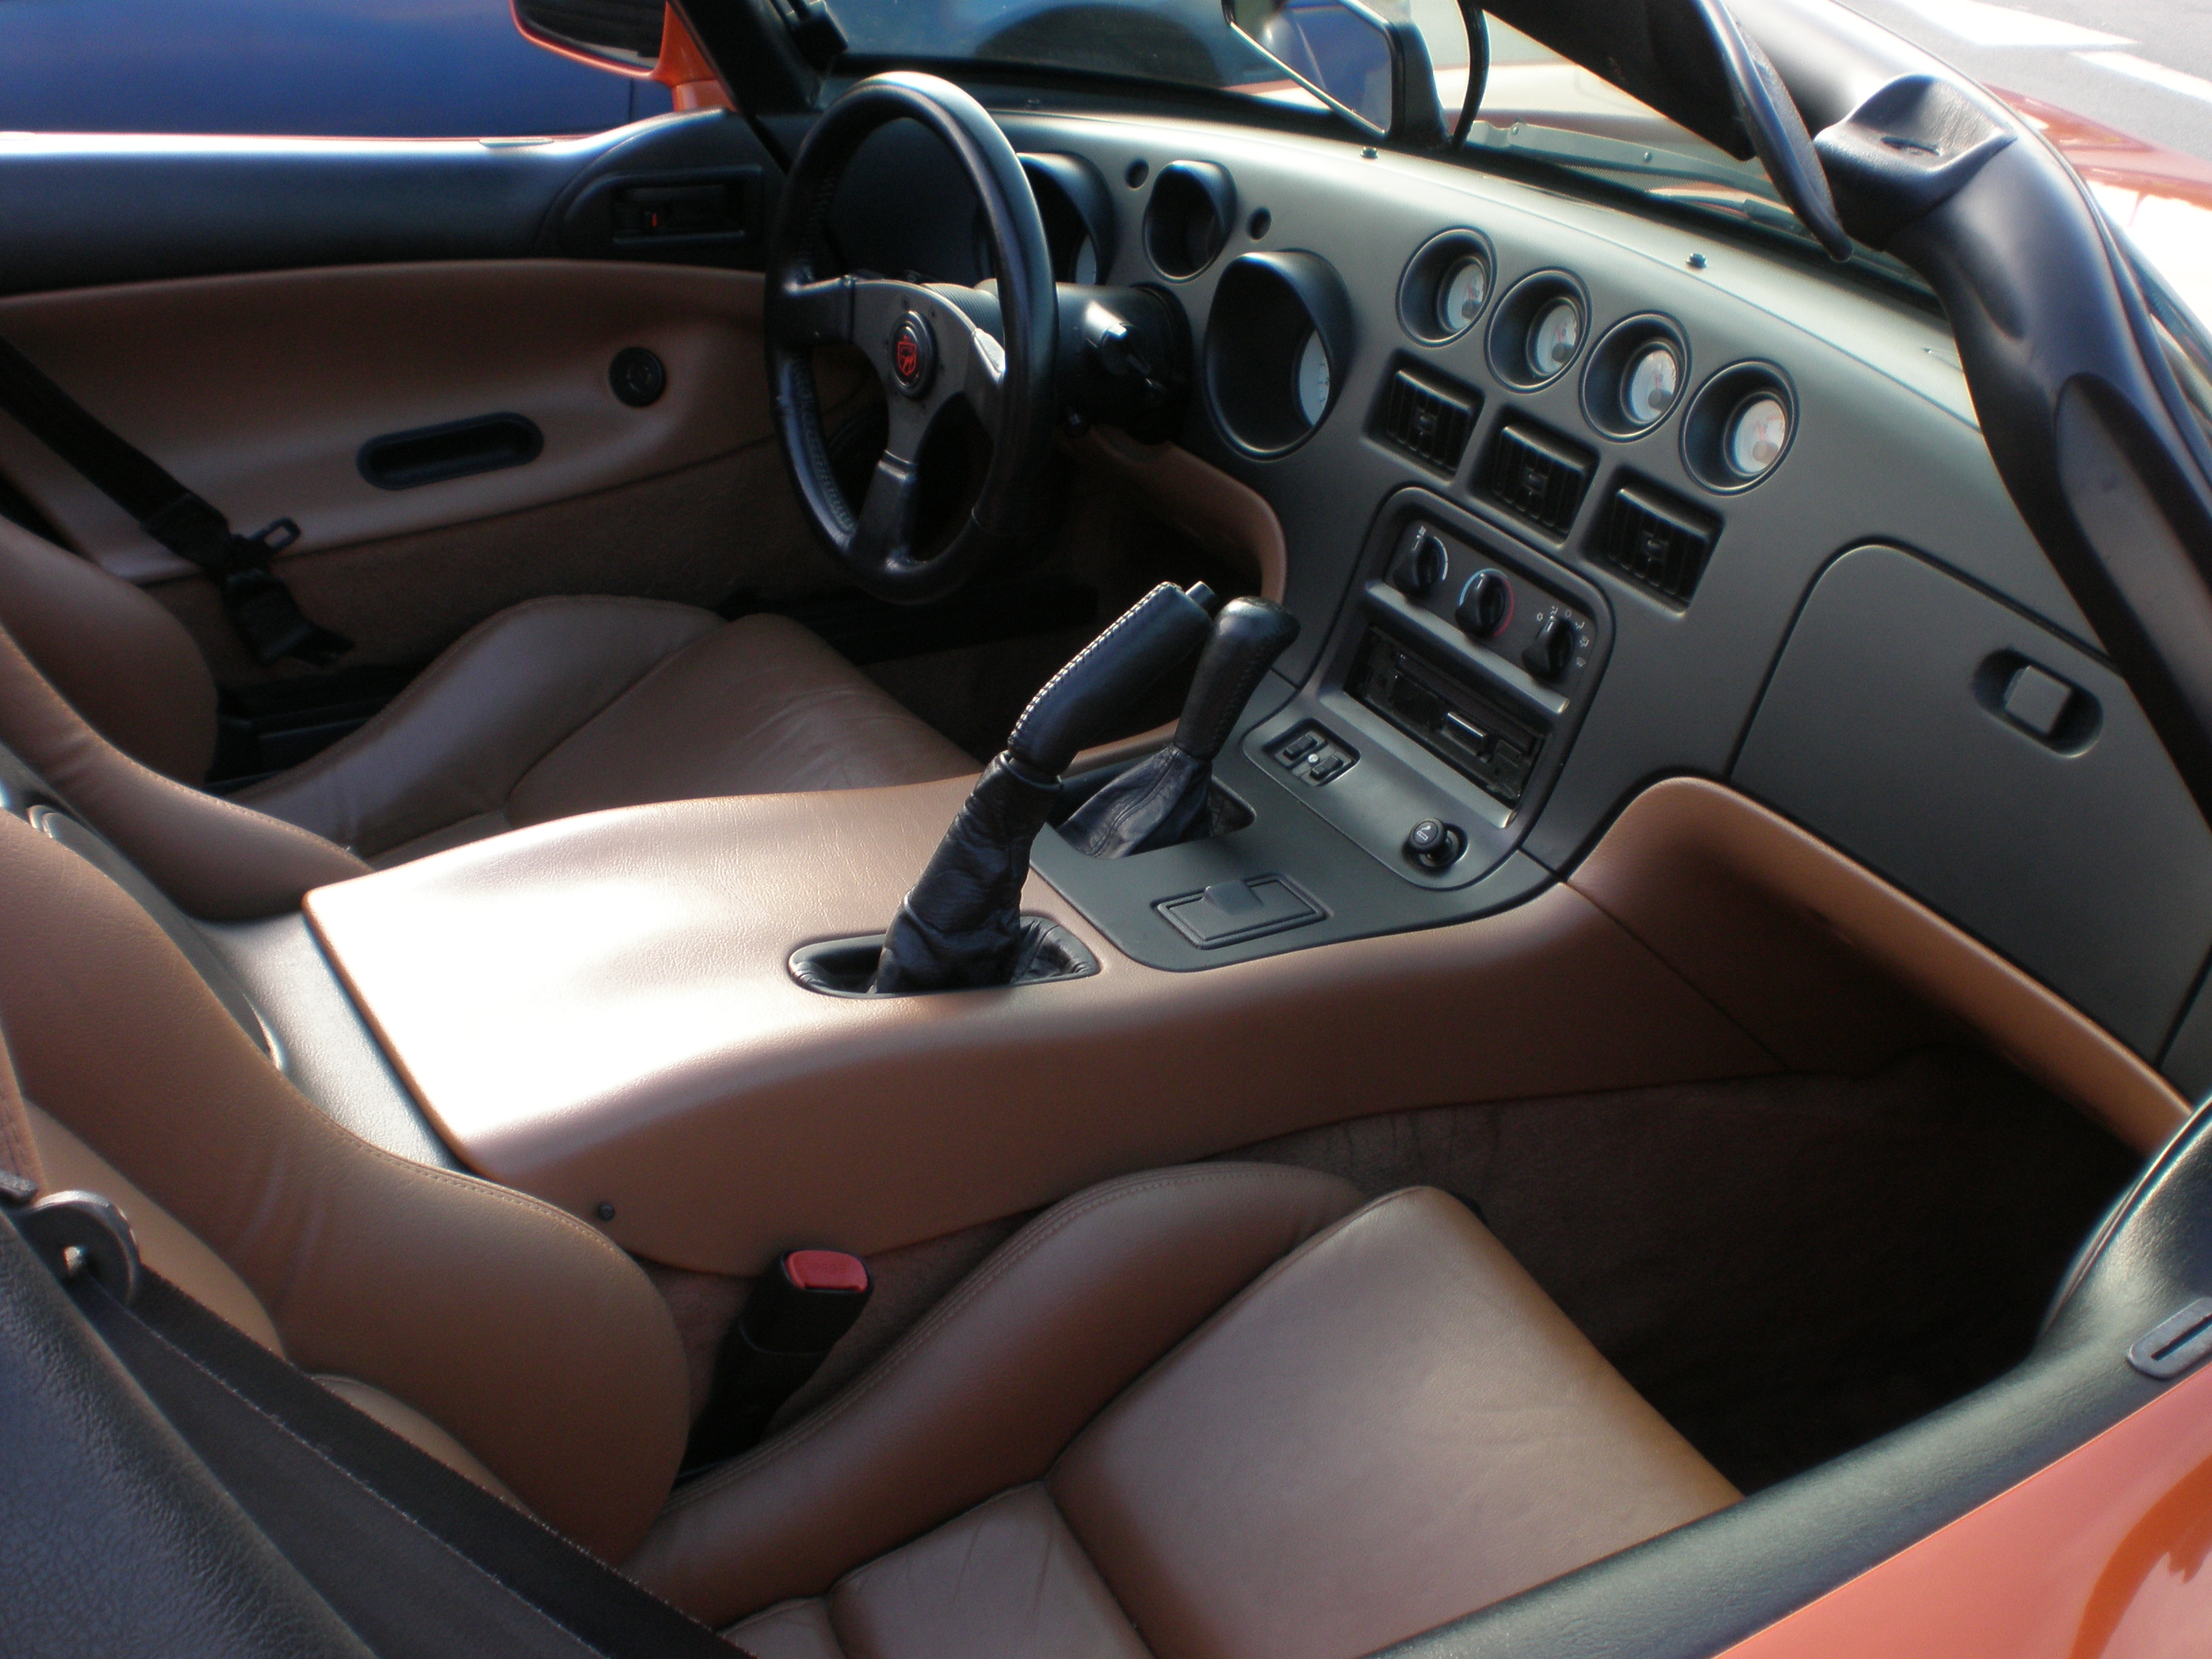 File:Orange Dodge Viper SRT-10 seats.JPG - Wikimedia Commons